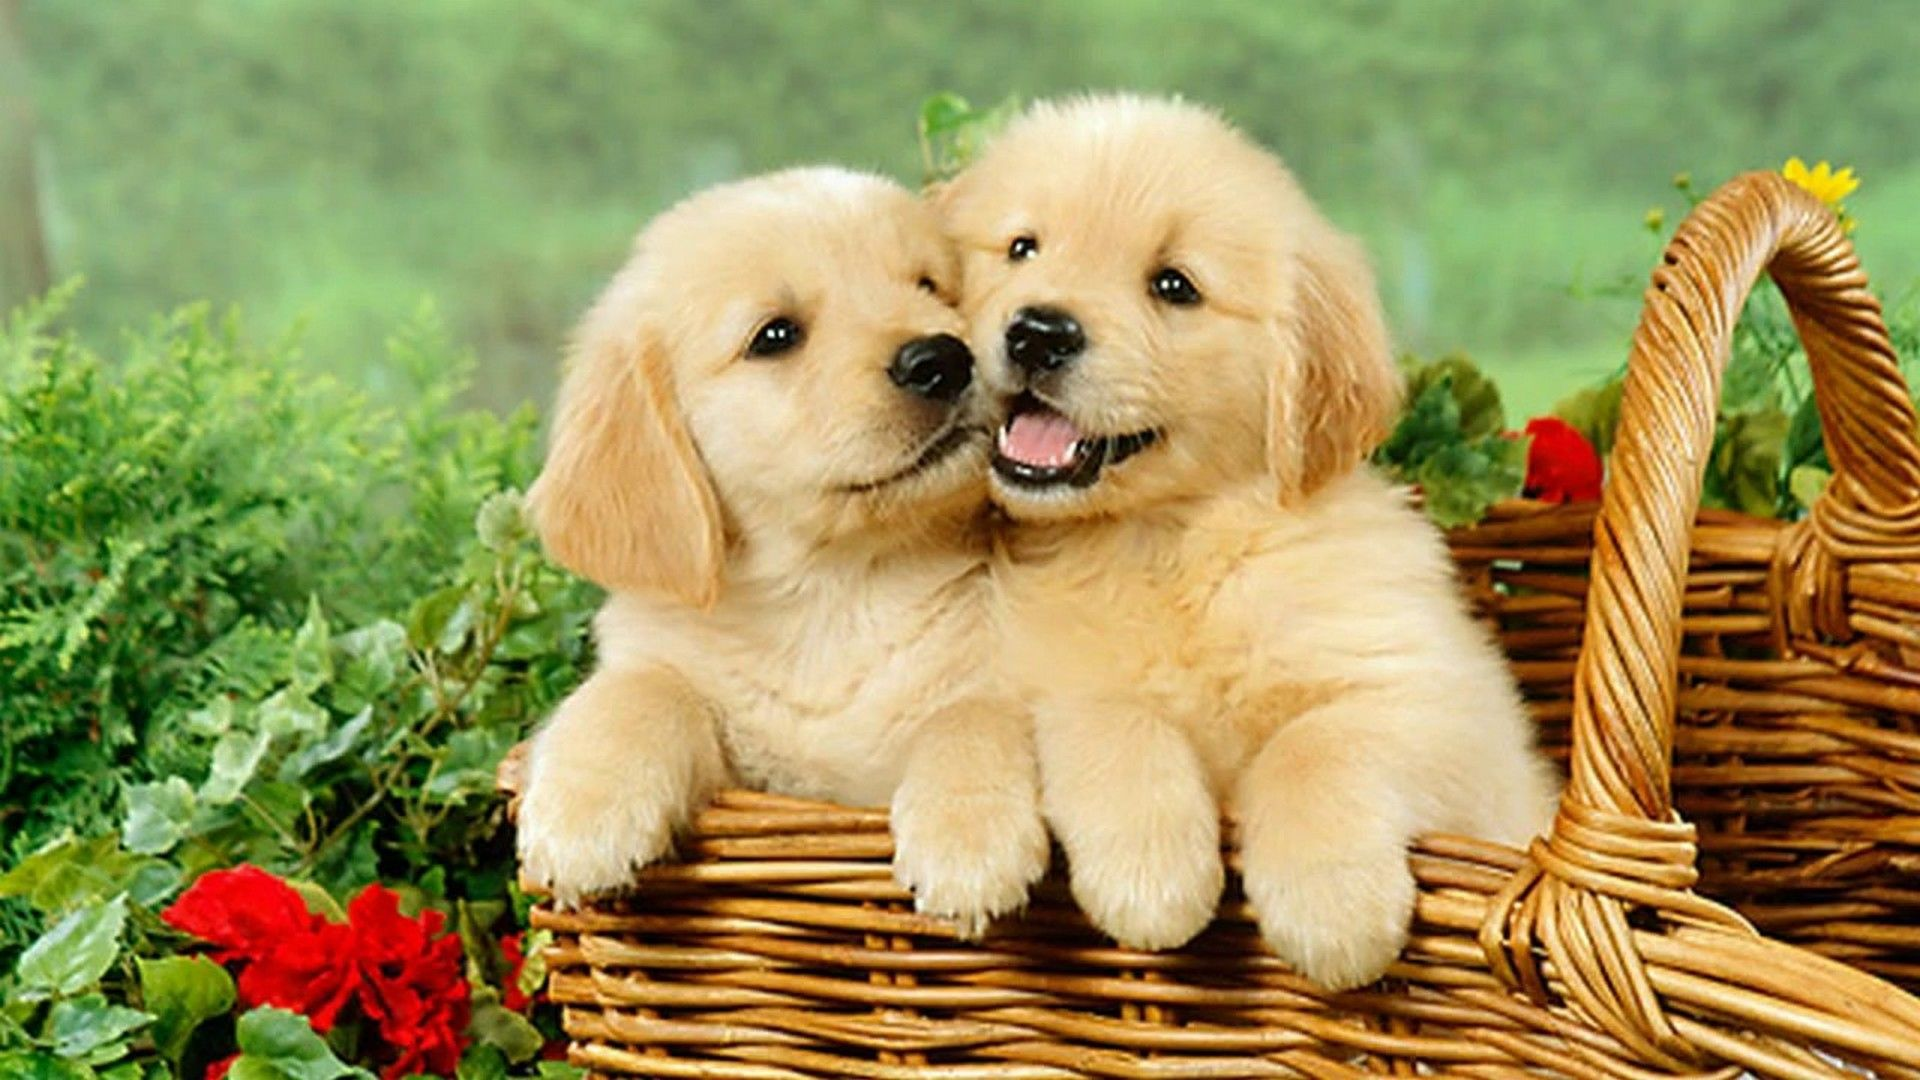 These Puppies Are Too Cute Look How Happy They Are Goldenretrieverpuppy Puppies Puppy Instadog Doglovers Dogli Really Cute Puppies Puppies Cute Puppies